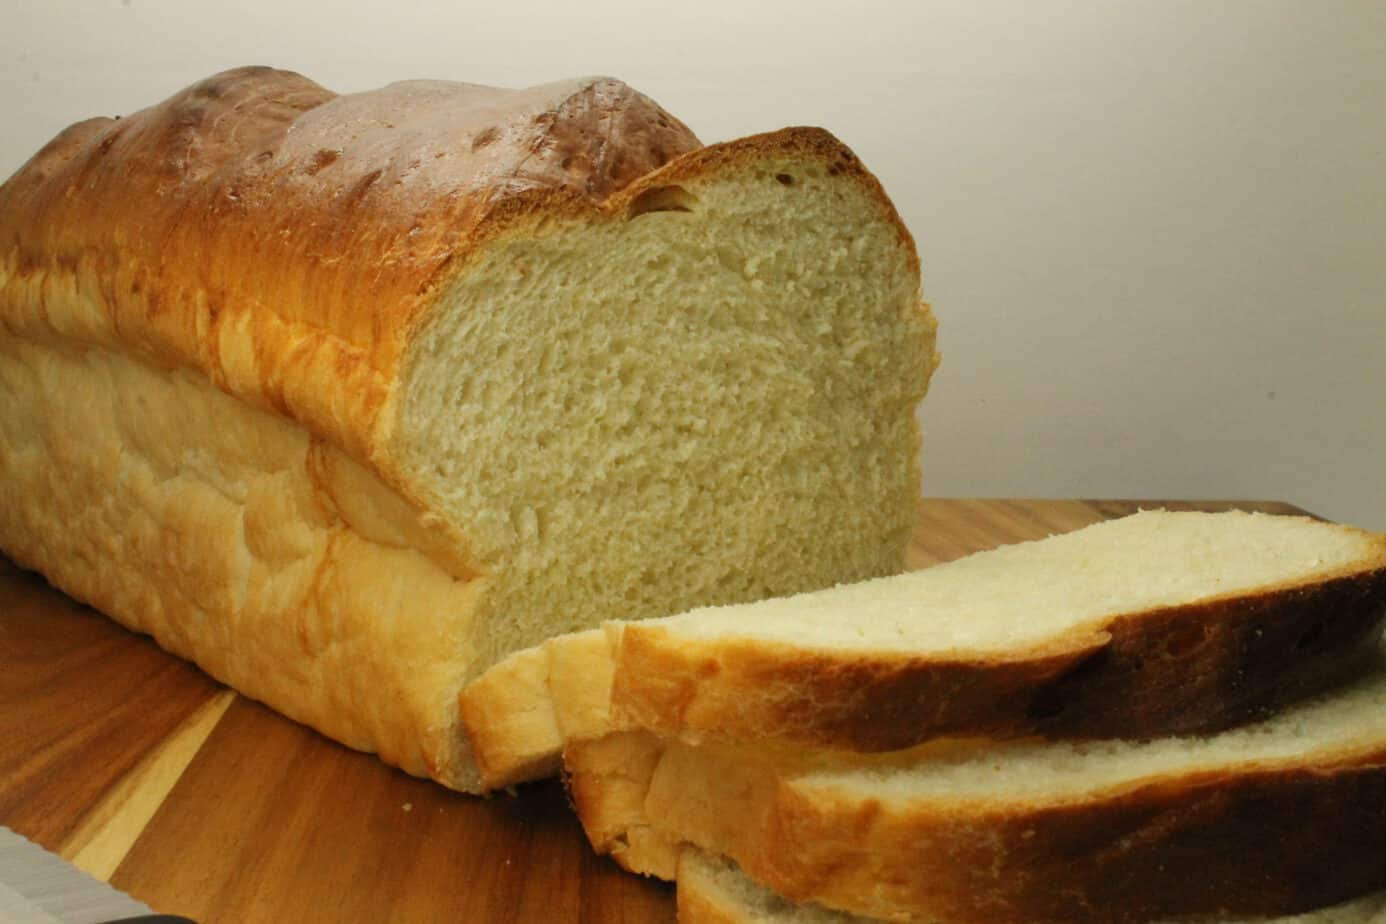 Super easy recipe for homemade bread. Great for sandwiches and toast!